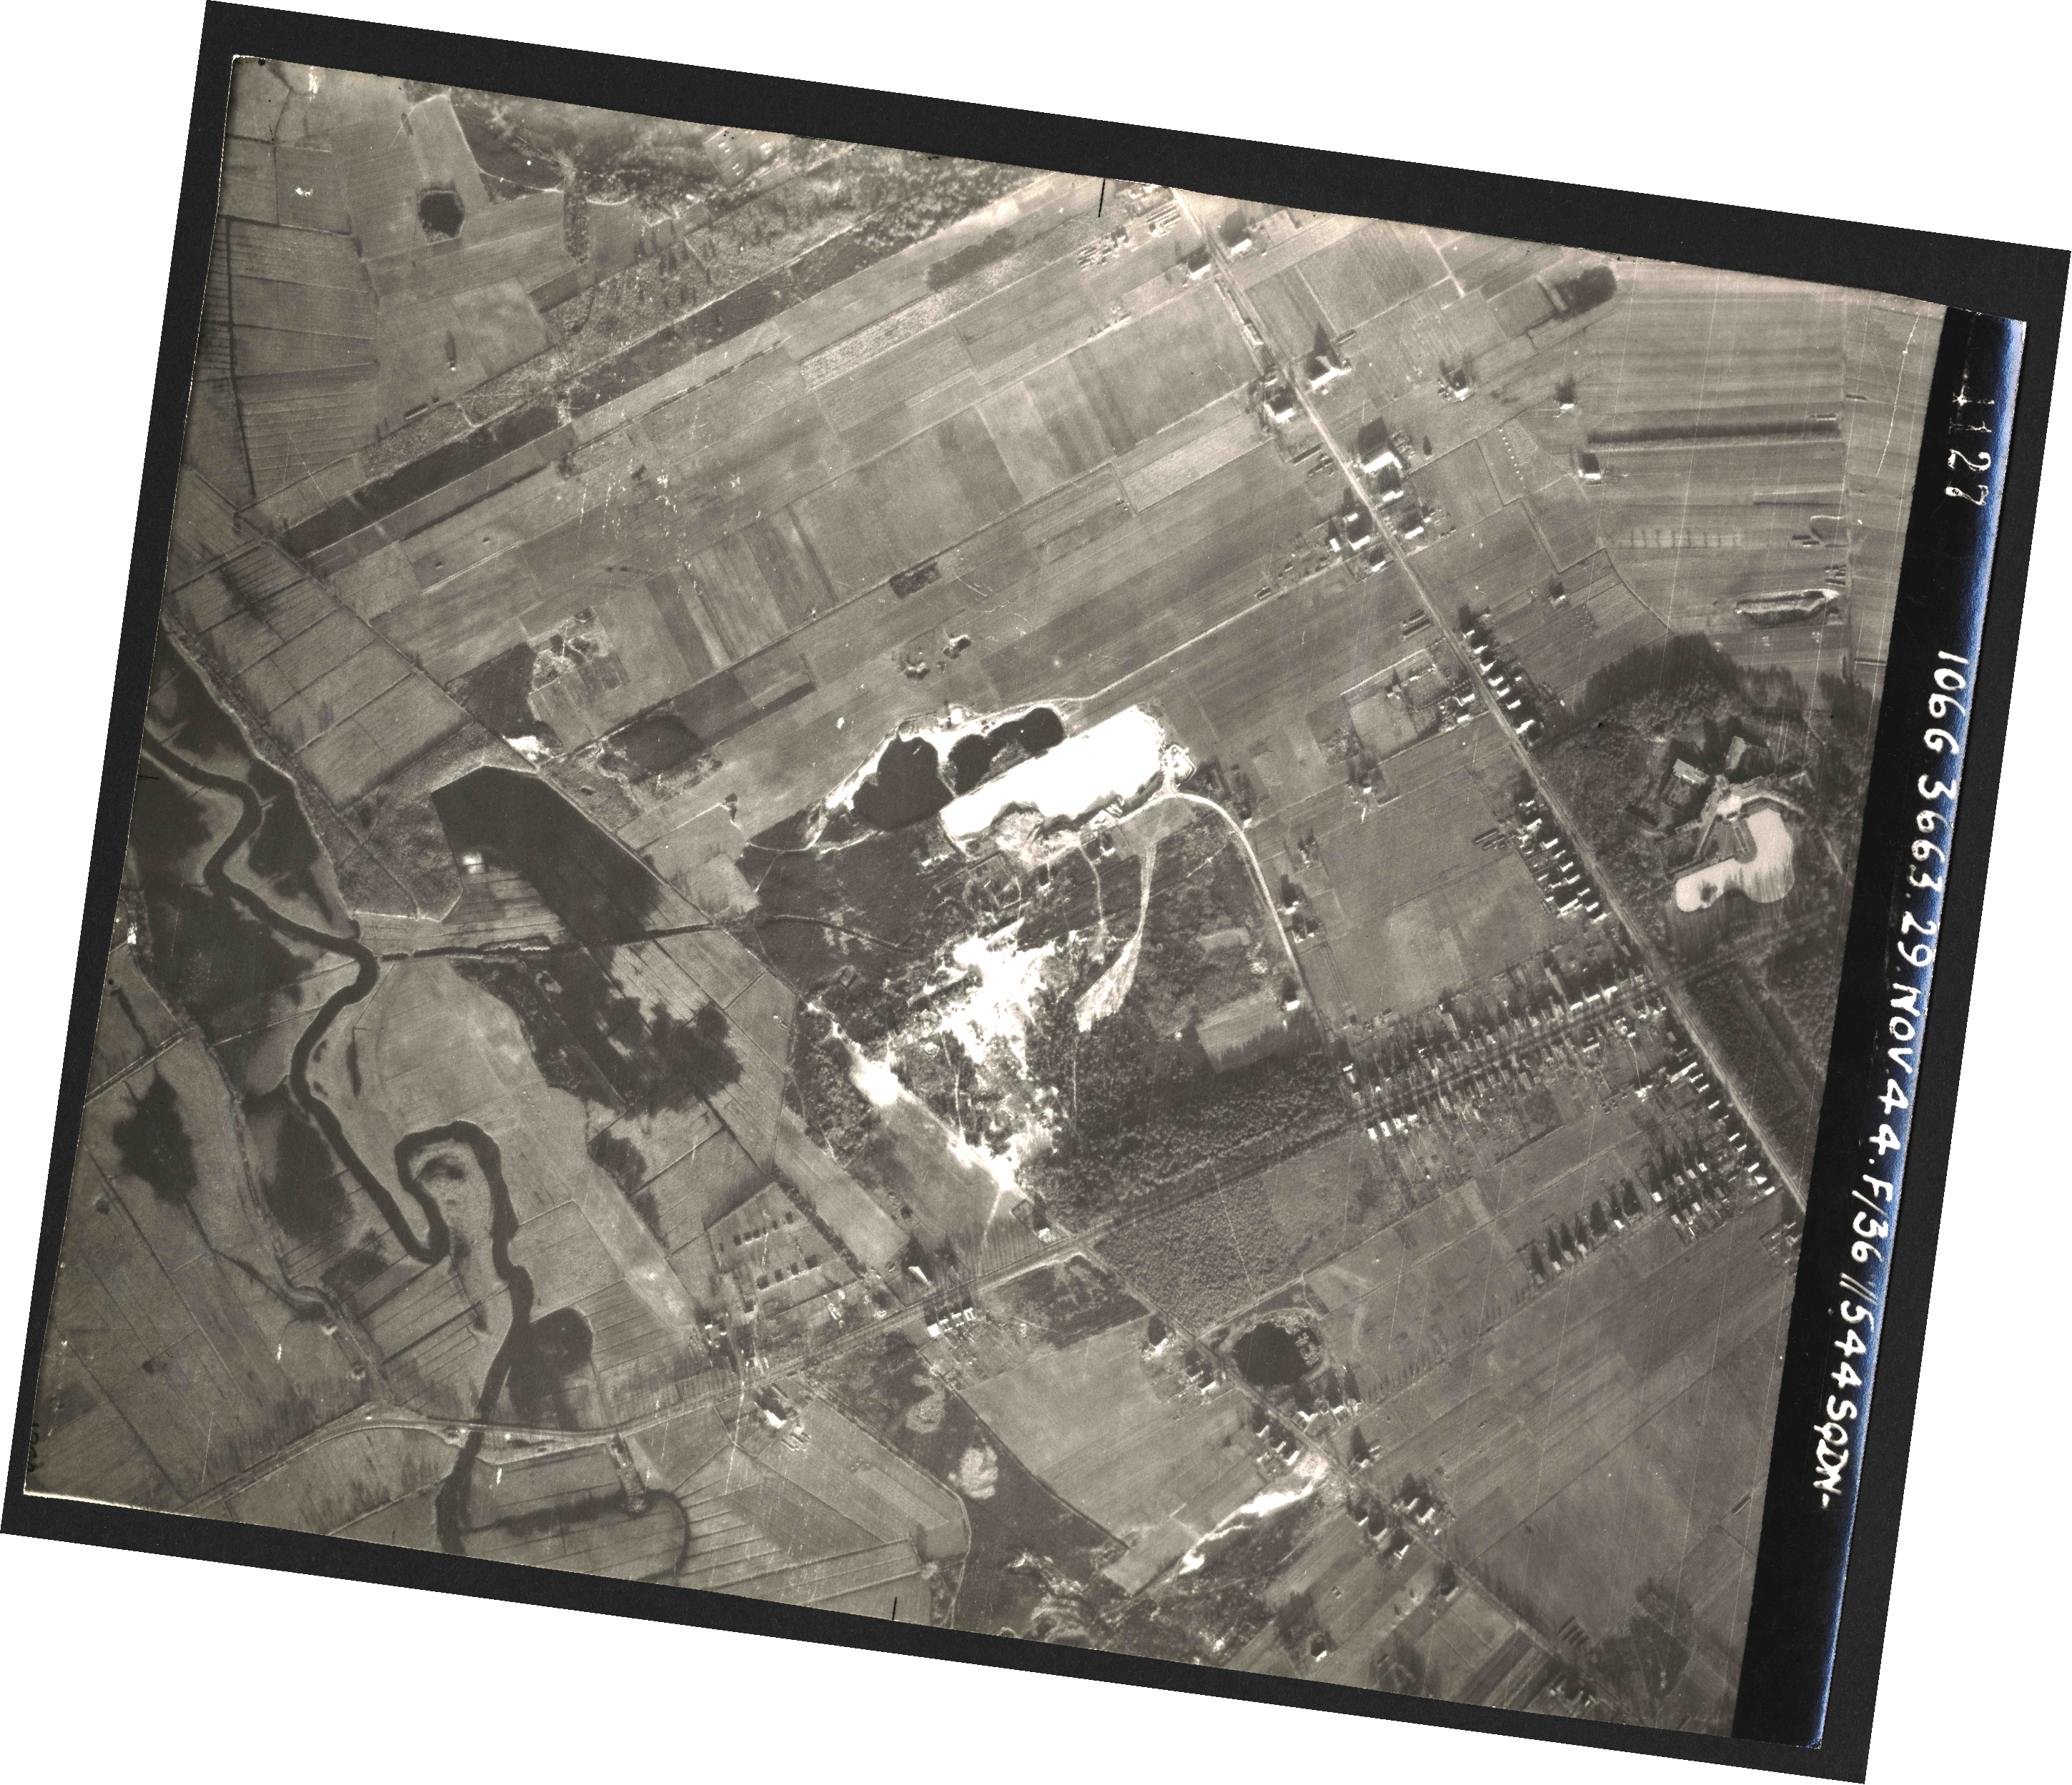 Collection RAF aerial photos 1940-1945 - flight 025, run 02, photo 4127